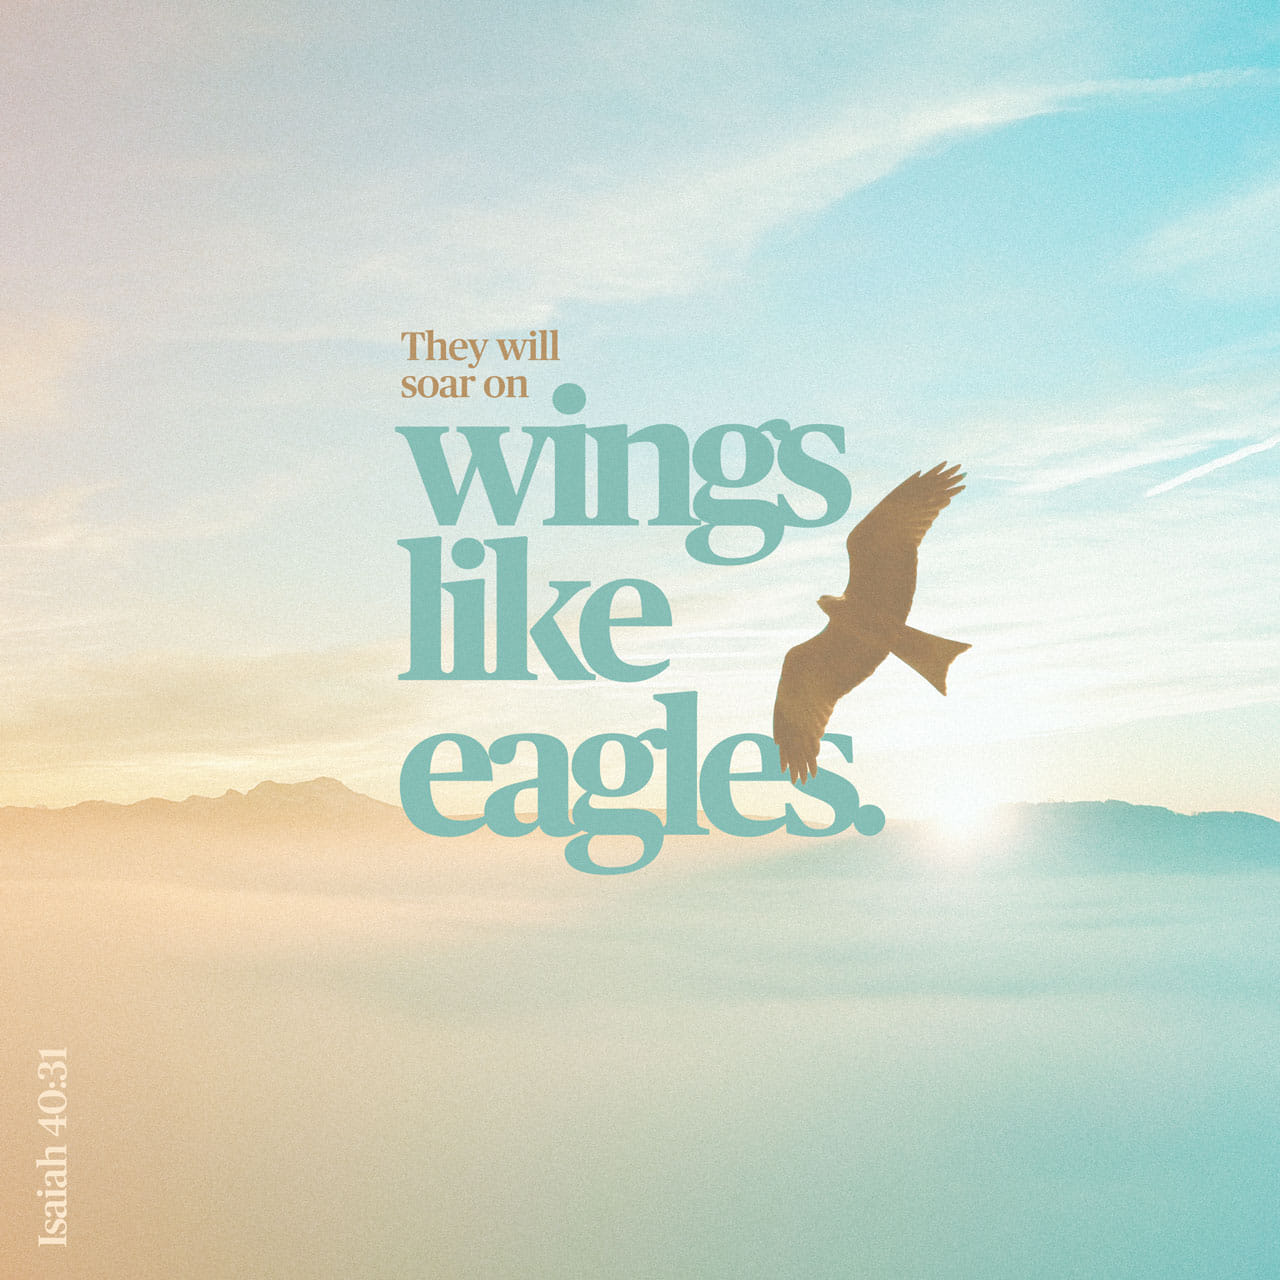 Isaiah 40:31 But they that wait upon the LORD shall renew their strength; they shall mount up with wings as eagles; they shall run, and not be weary; and they shall walk, and not faint. | King James Version (KJV)